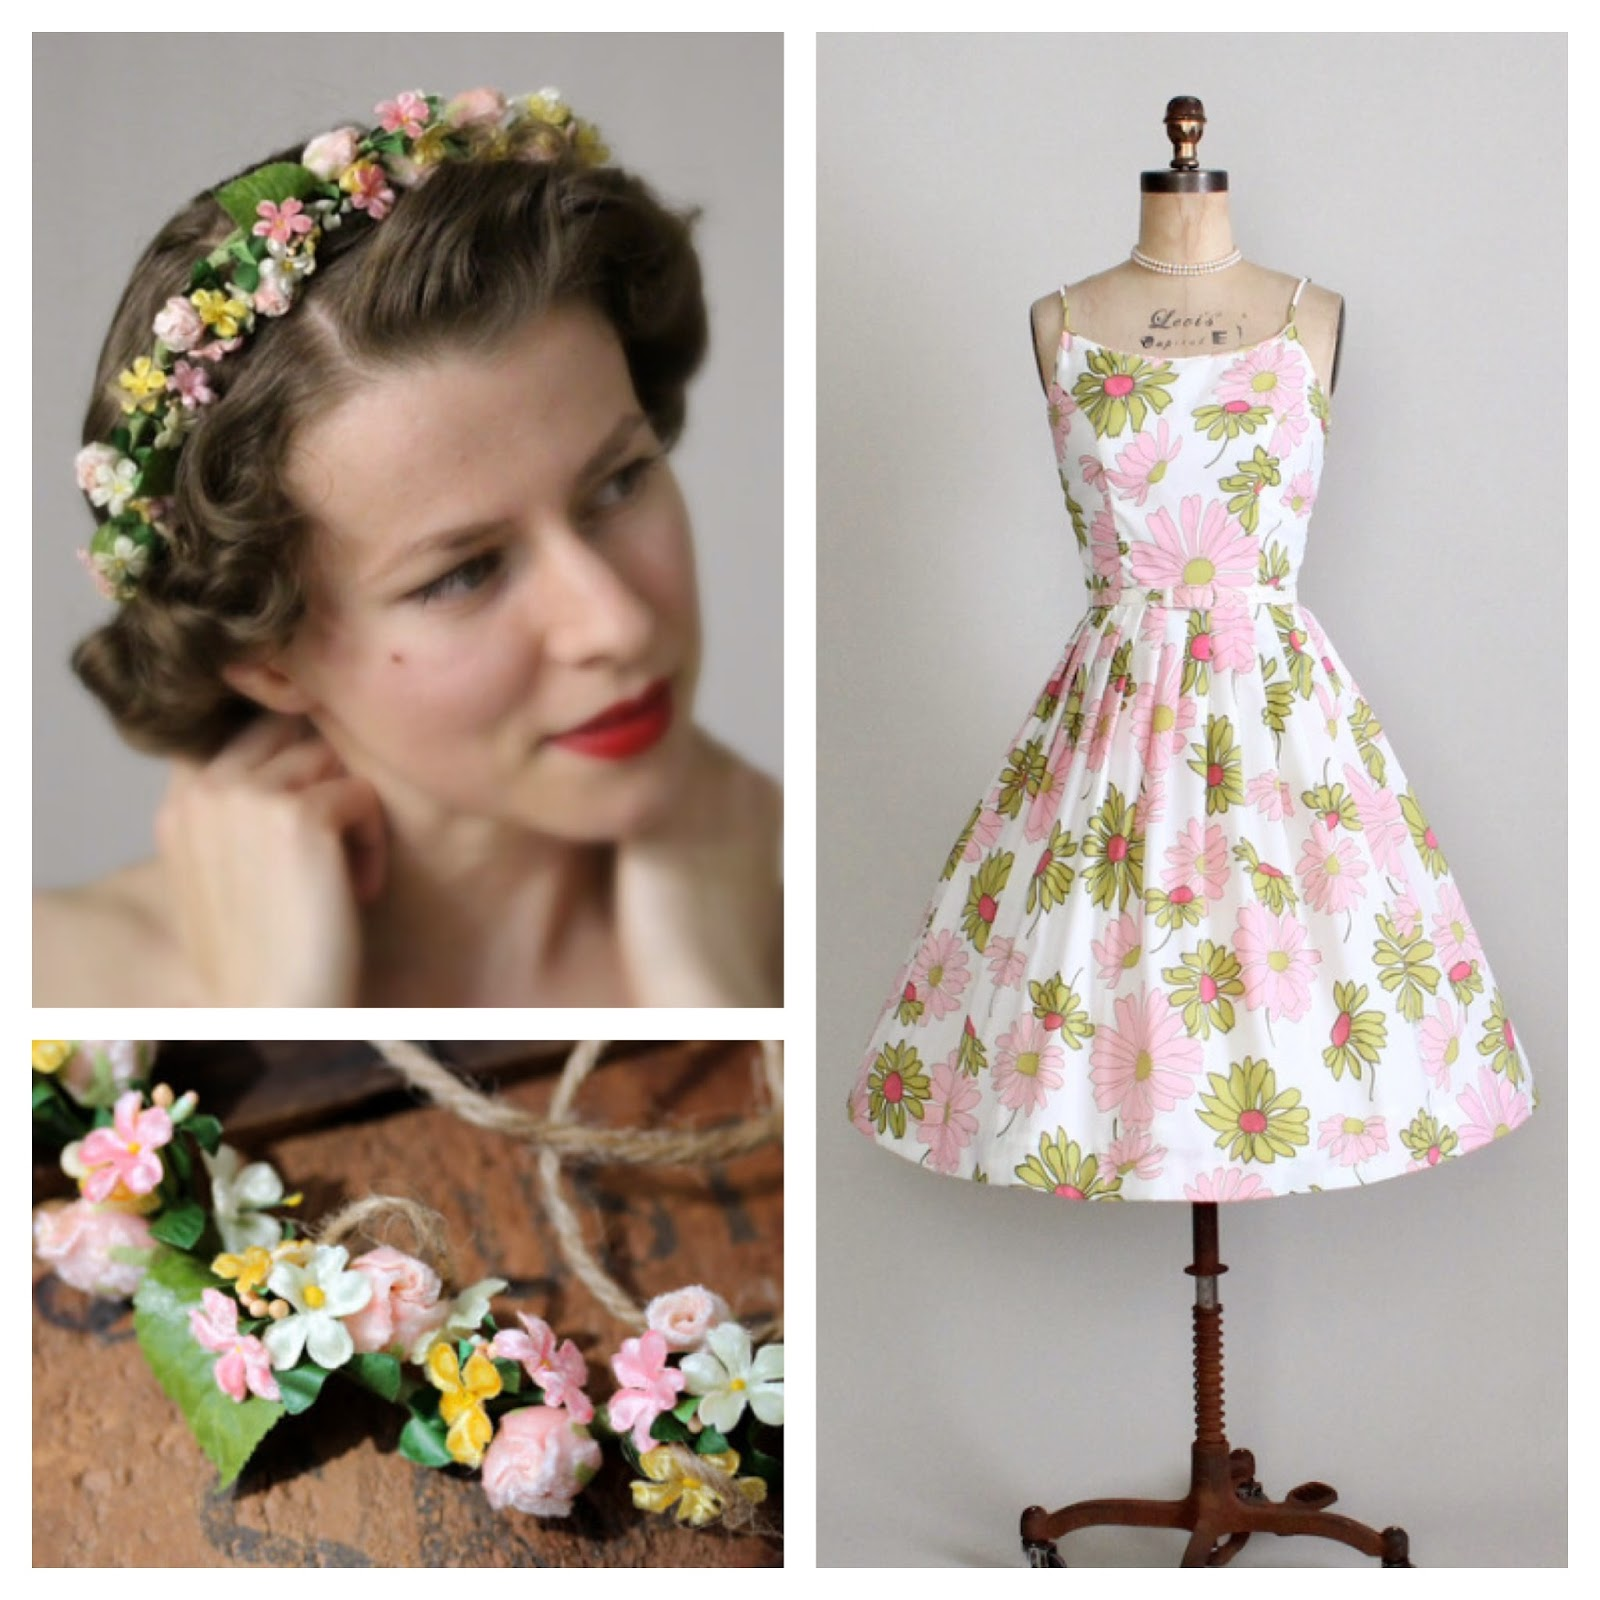 1950s Spring #1950s #dress #vintage #hair #flower #dress #spring